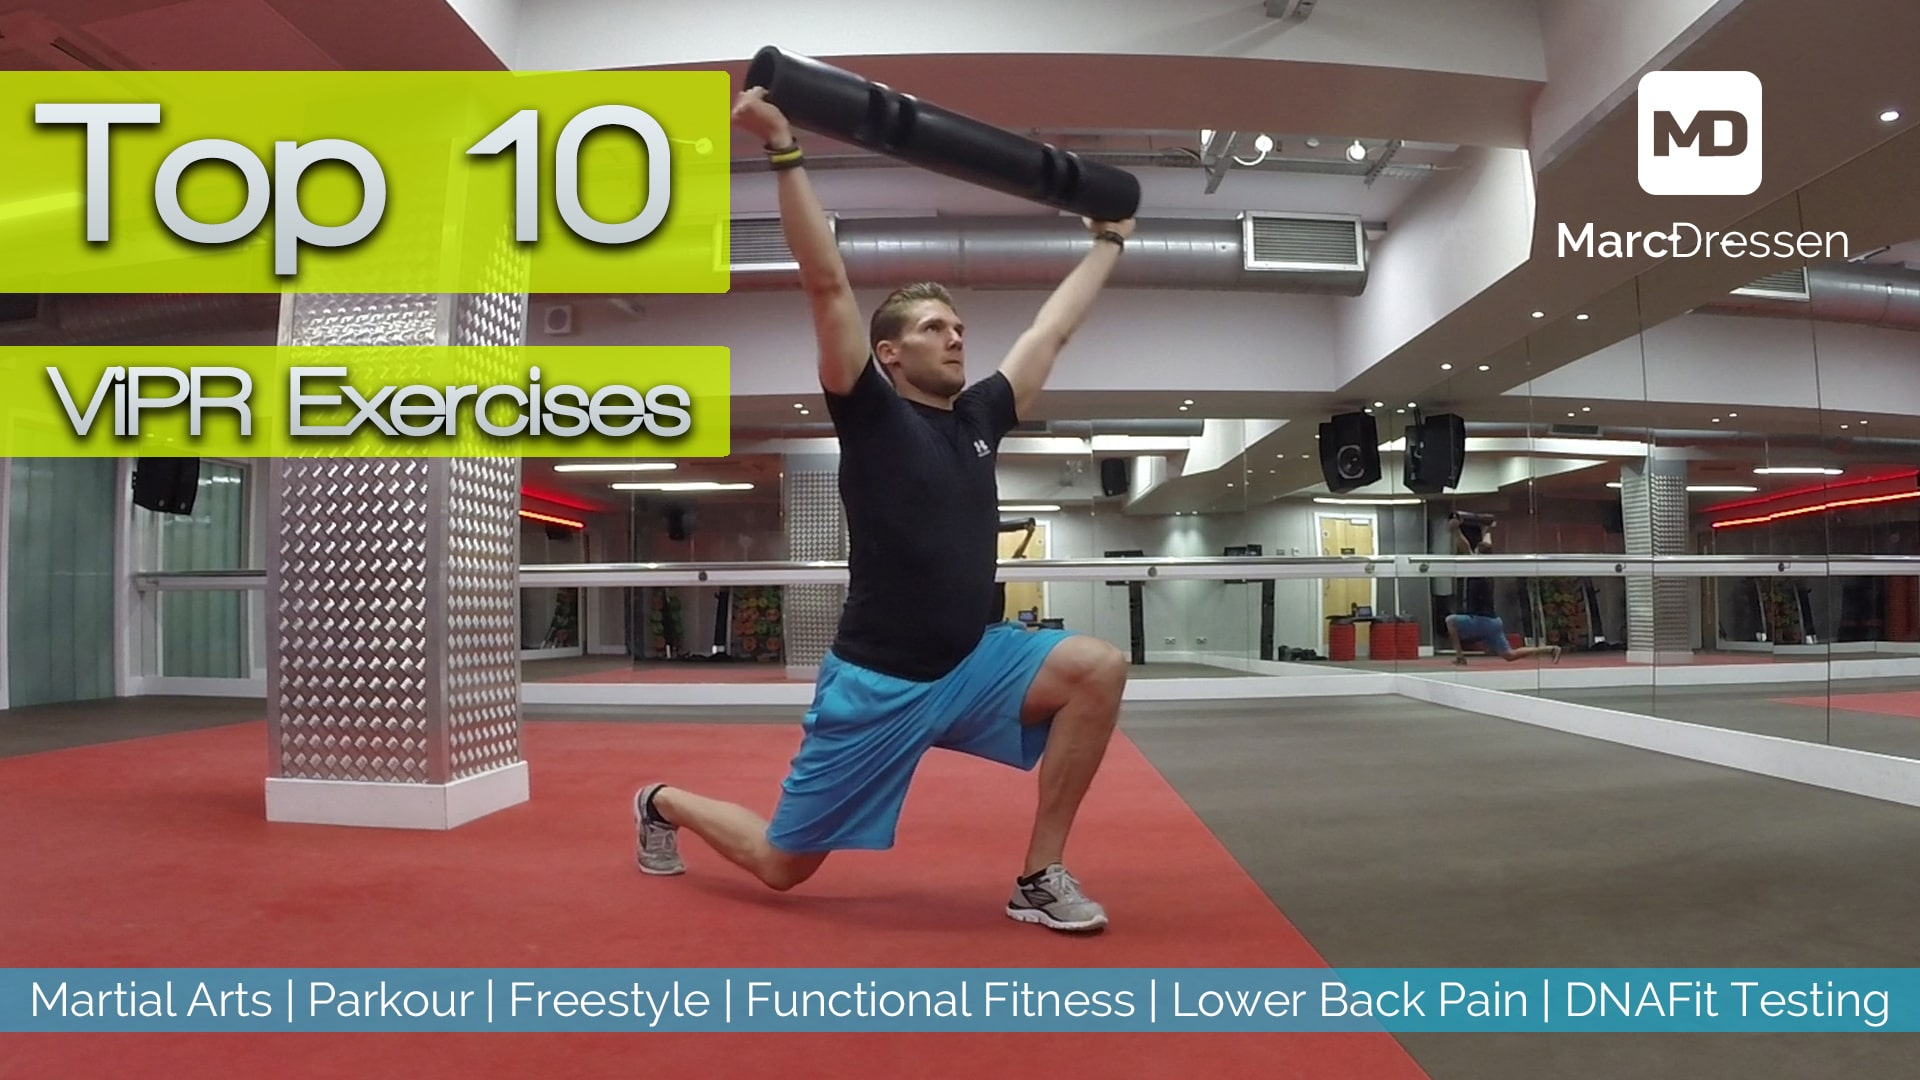 Top 10 ViPR Exercises